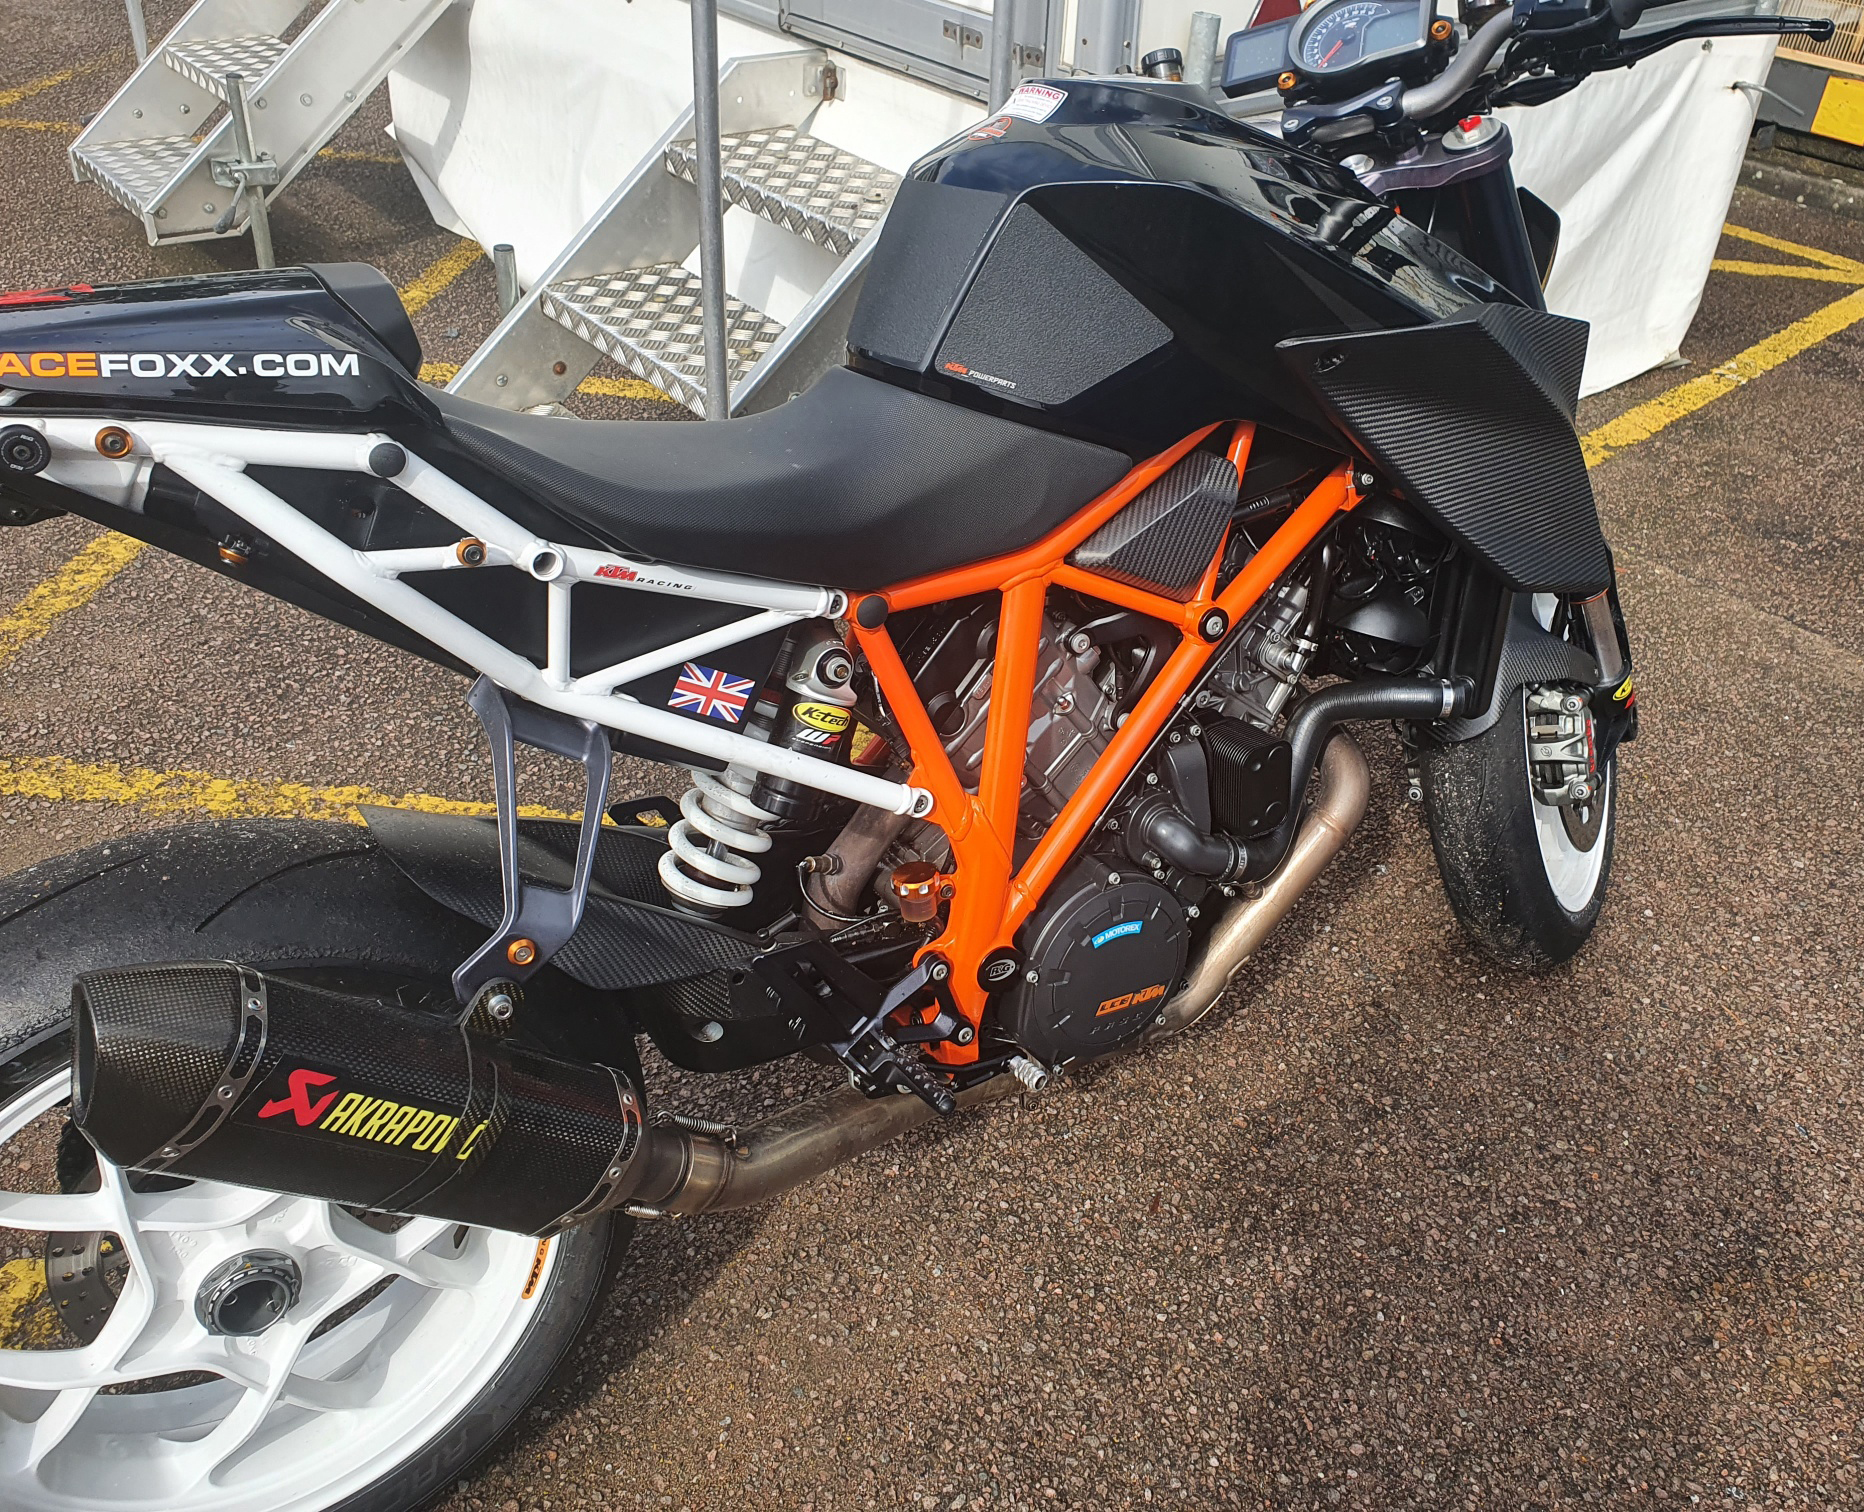 ktm-super-duke-carbon-fibre-parts-2.jpg